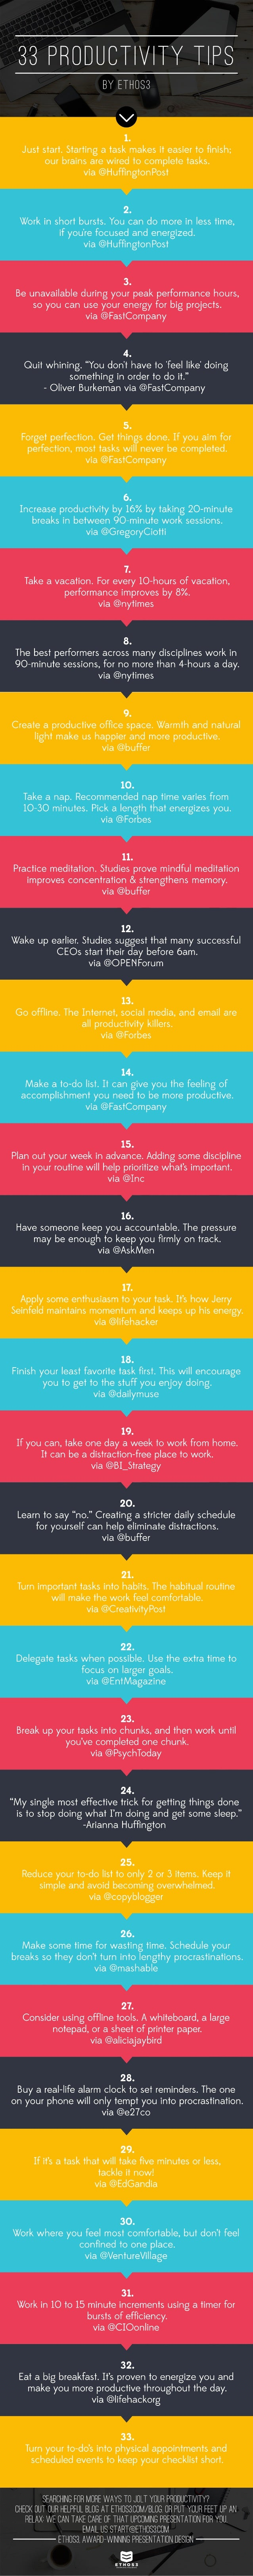 33 Productivity Tips, in 140 Characters or Less